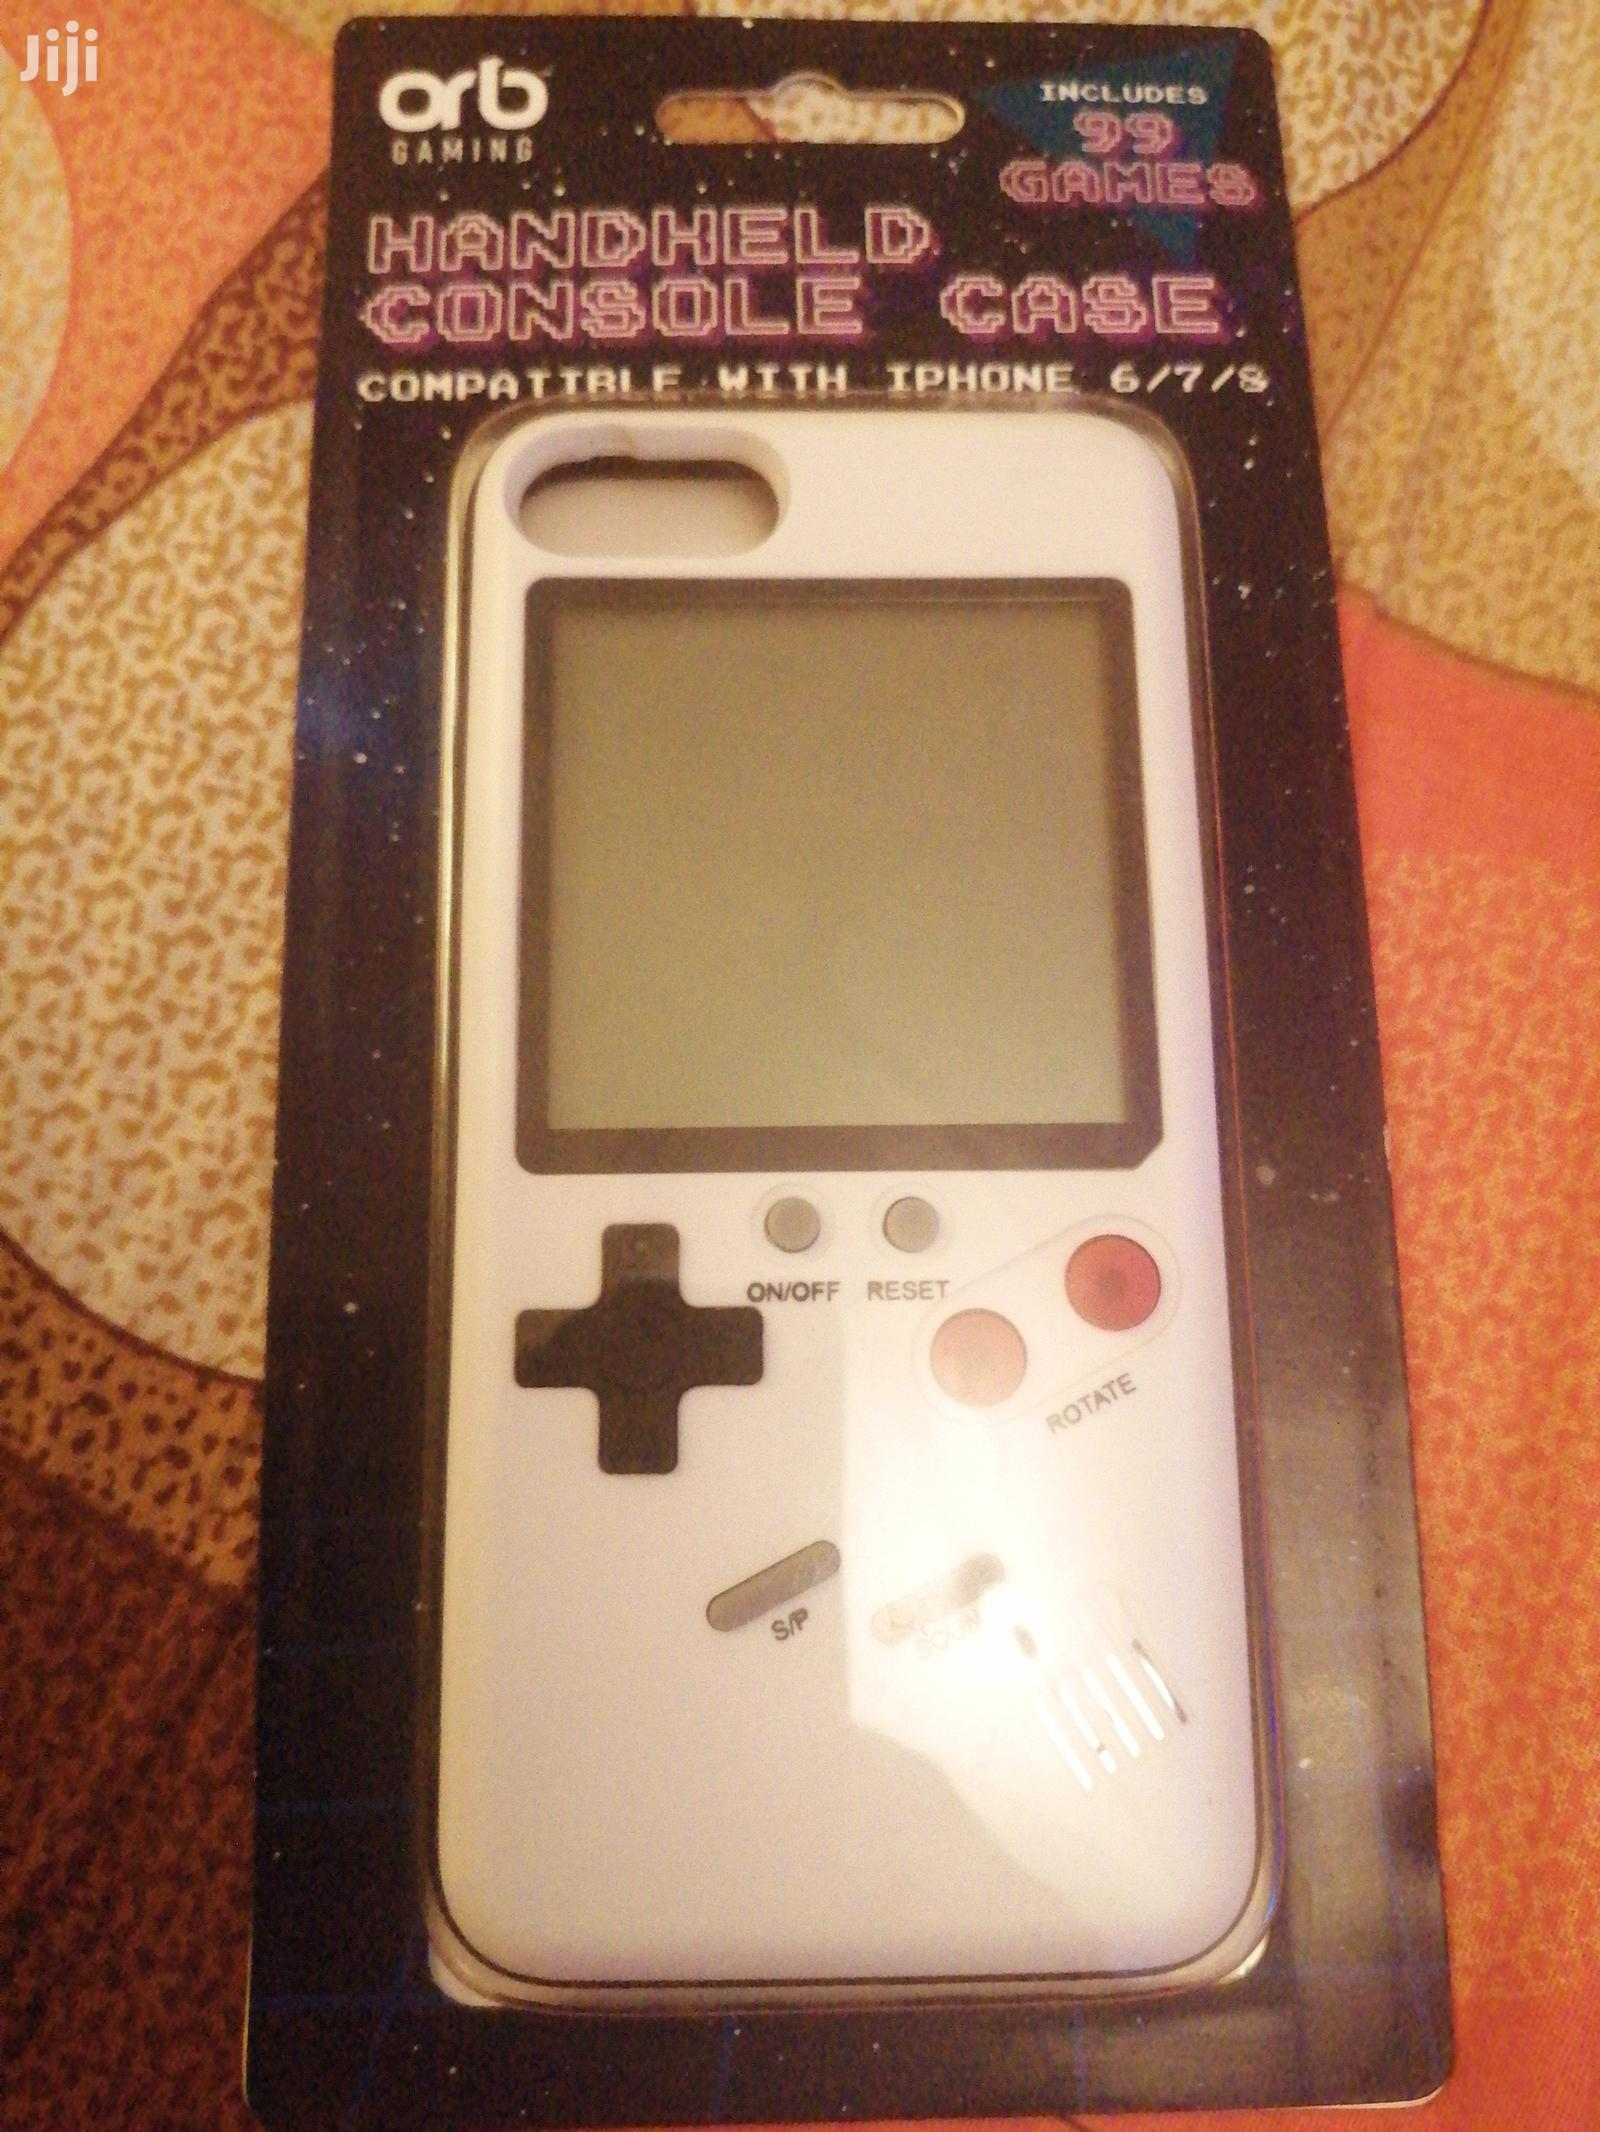 Console iPhone Case for 6/7/8